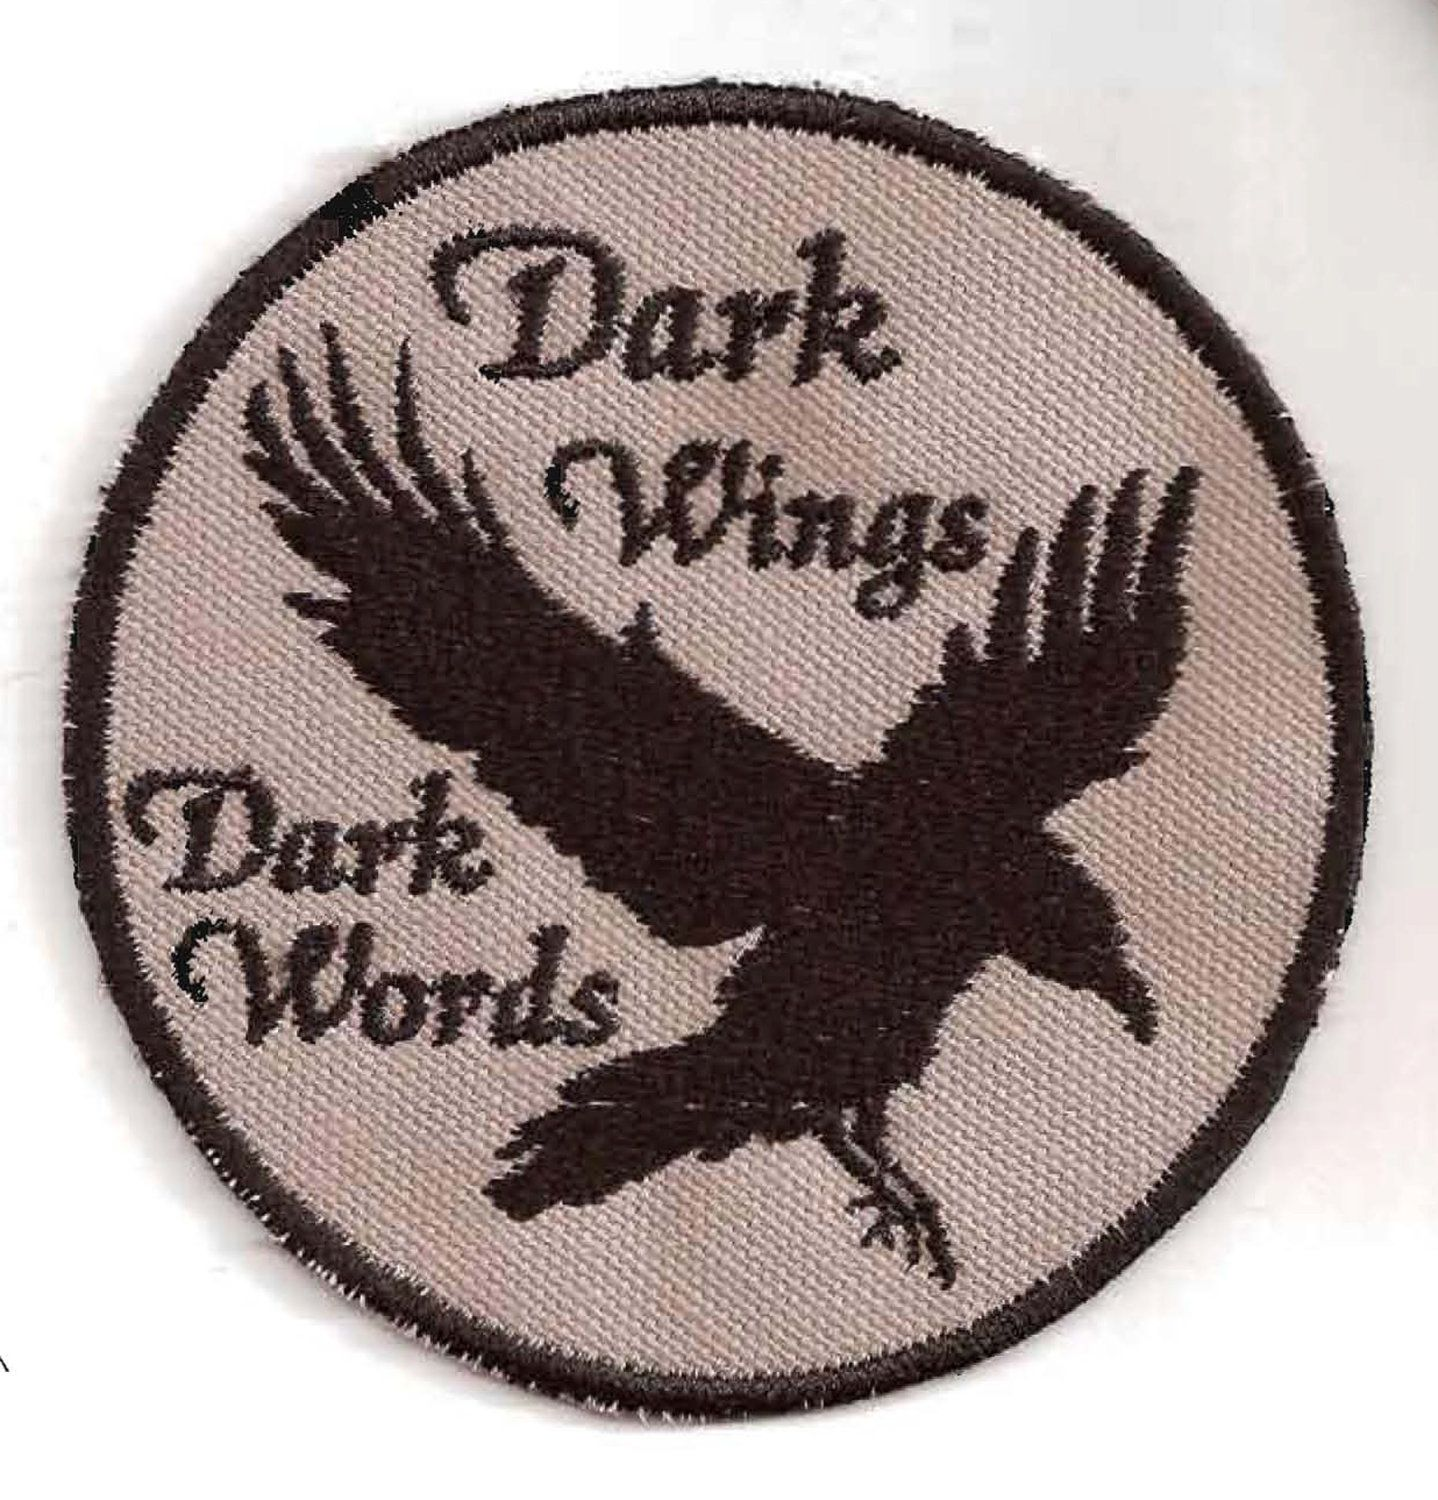 """Song of Ice and Fire, Game of Thrones, """"Dark Wings, Dark Words"""" Raven Patch. $9.00, via Etsy. 3.75"""" in diameter."""